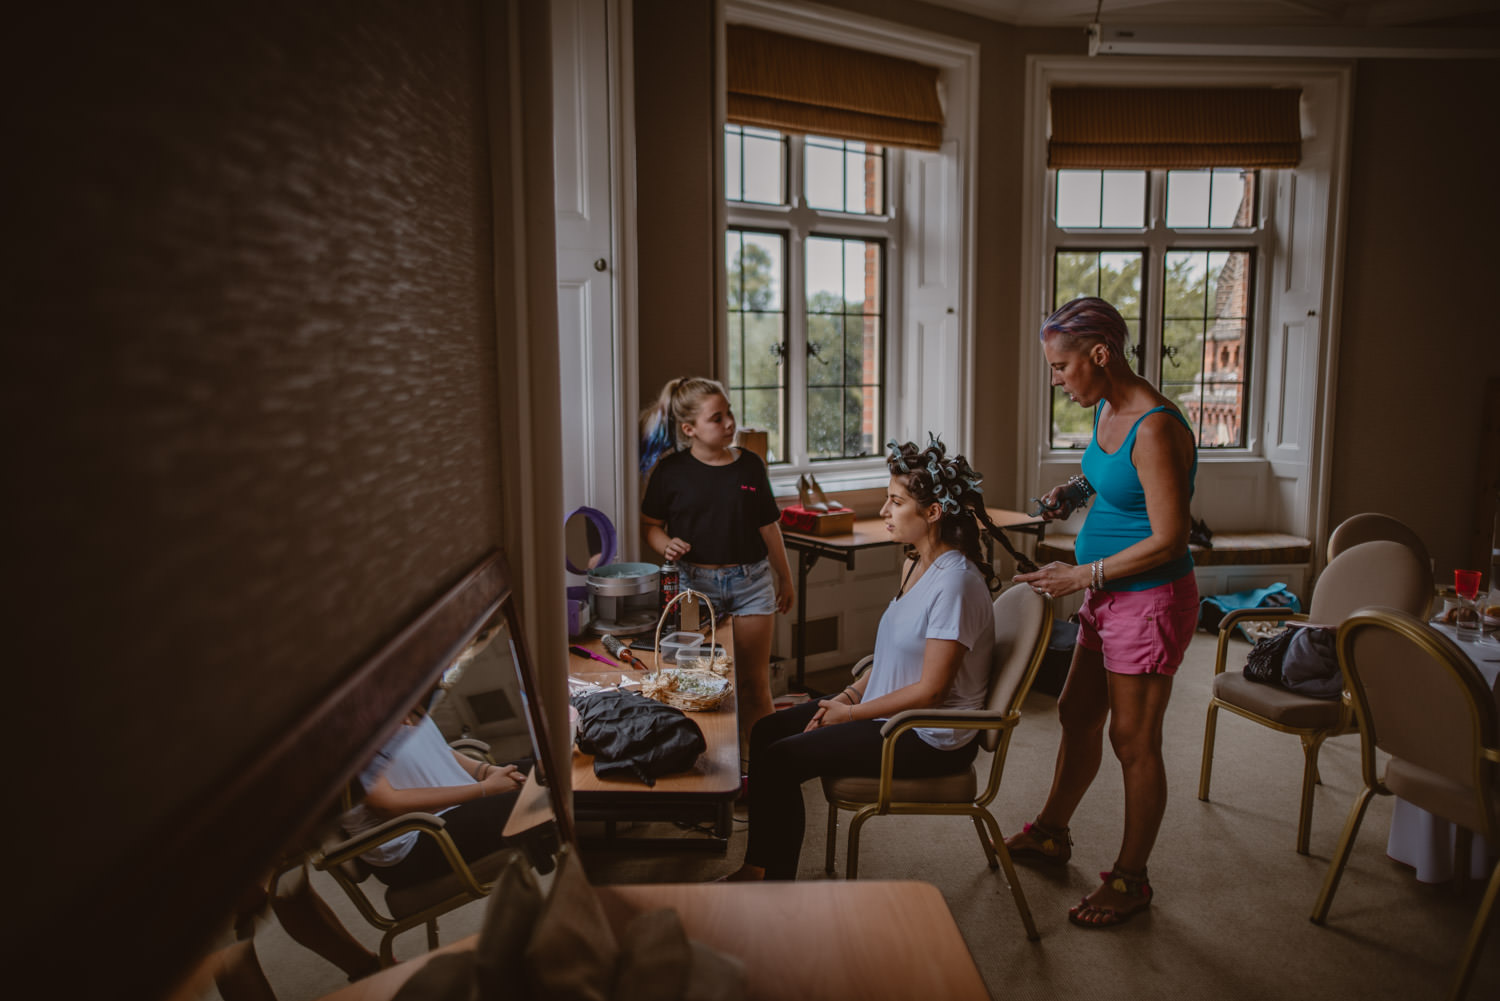 Bridesmaid getting ready at the Seymour Room in The Elvetham Hotel in Hampshire